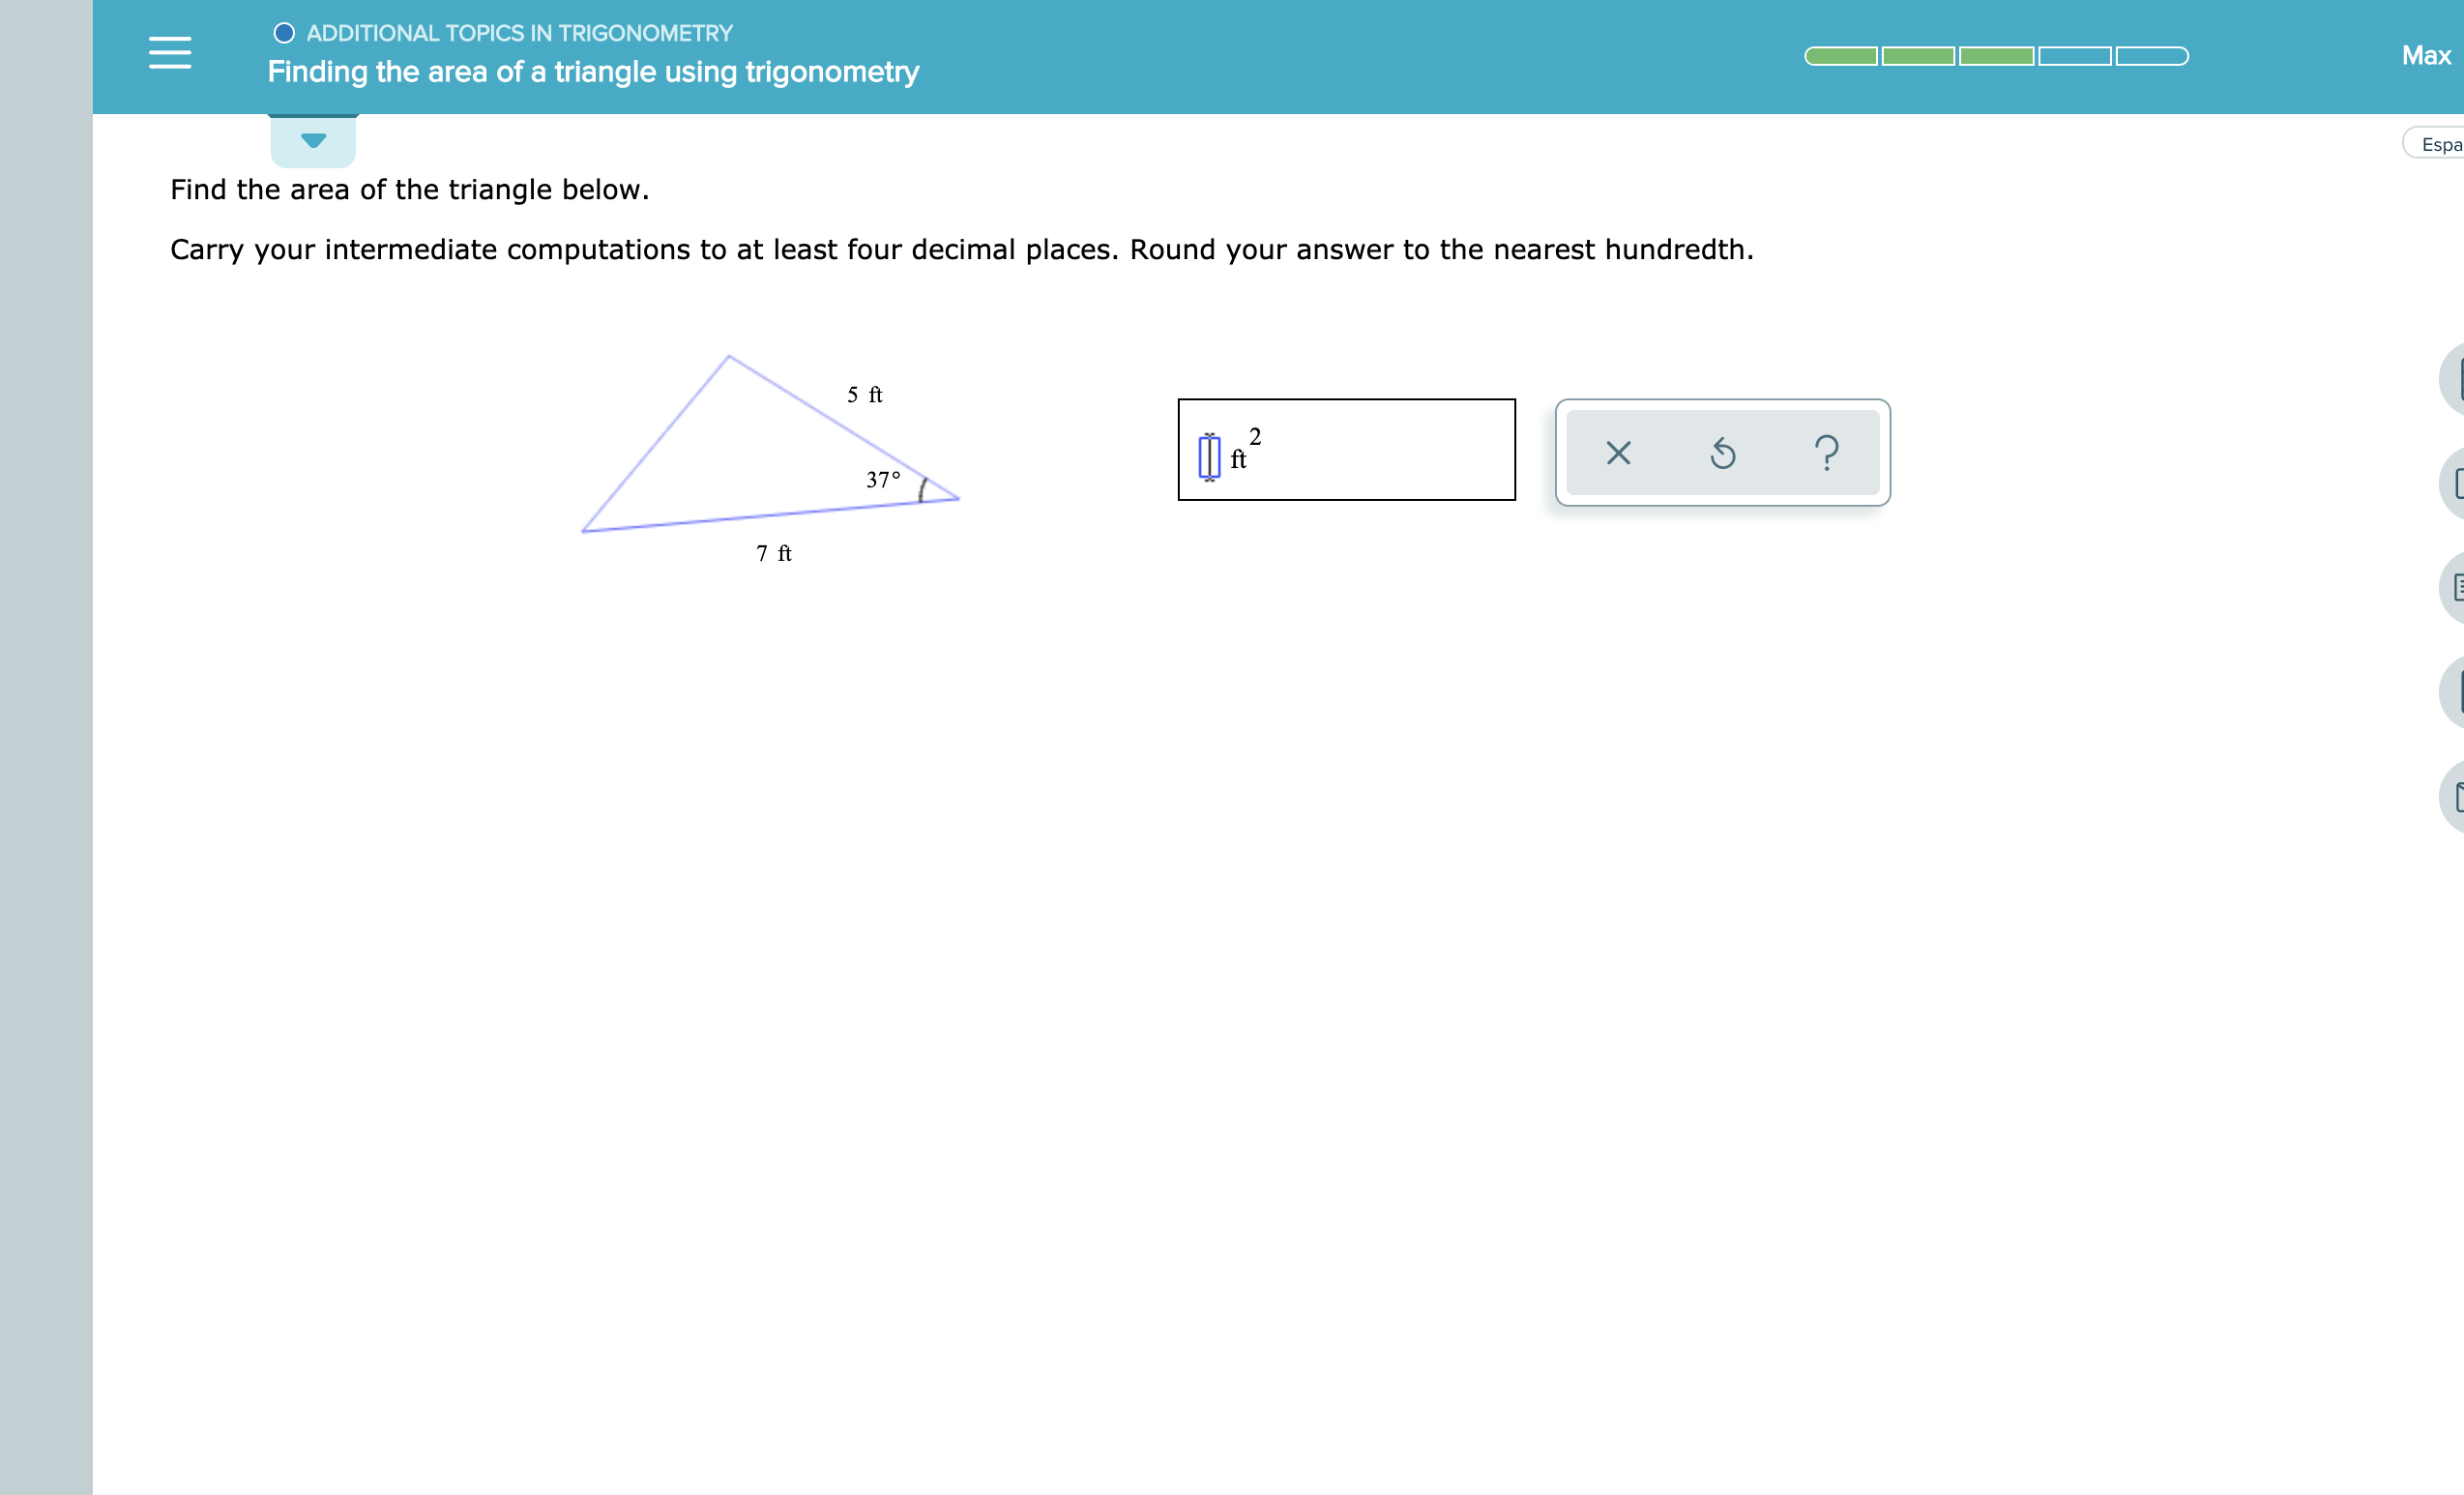 O ADDITIONAL TOPICS IN TRIGONOMETRY Max Finding the area of a triangle using trigonometry Esp Find the area of the triangle below. Carry your intermediate computations to at least four decimal places. Round your answer to the nearest hundredth 5 ft 2 ft 37° 7 ft